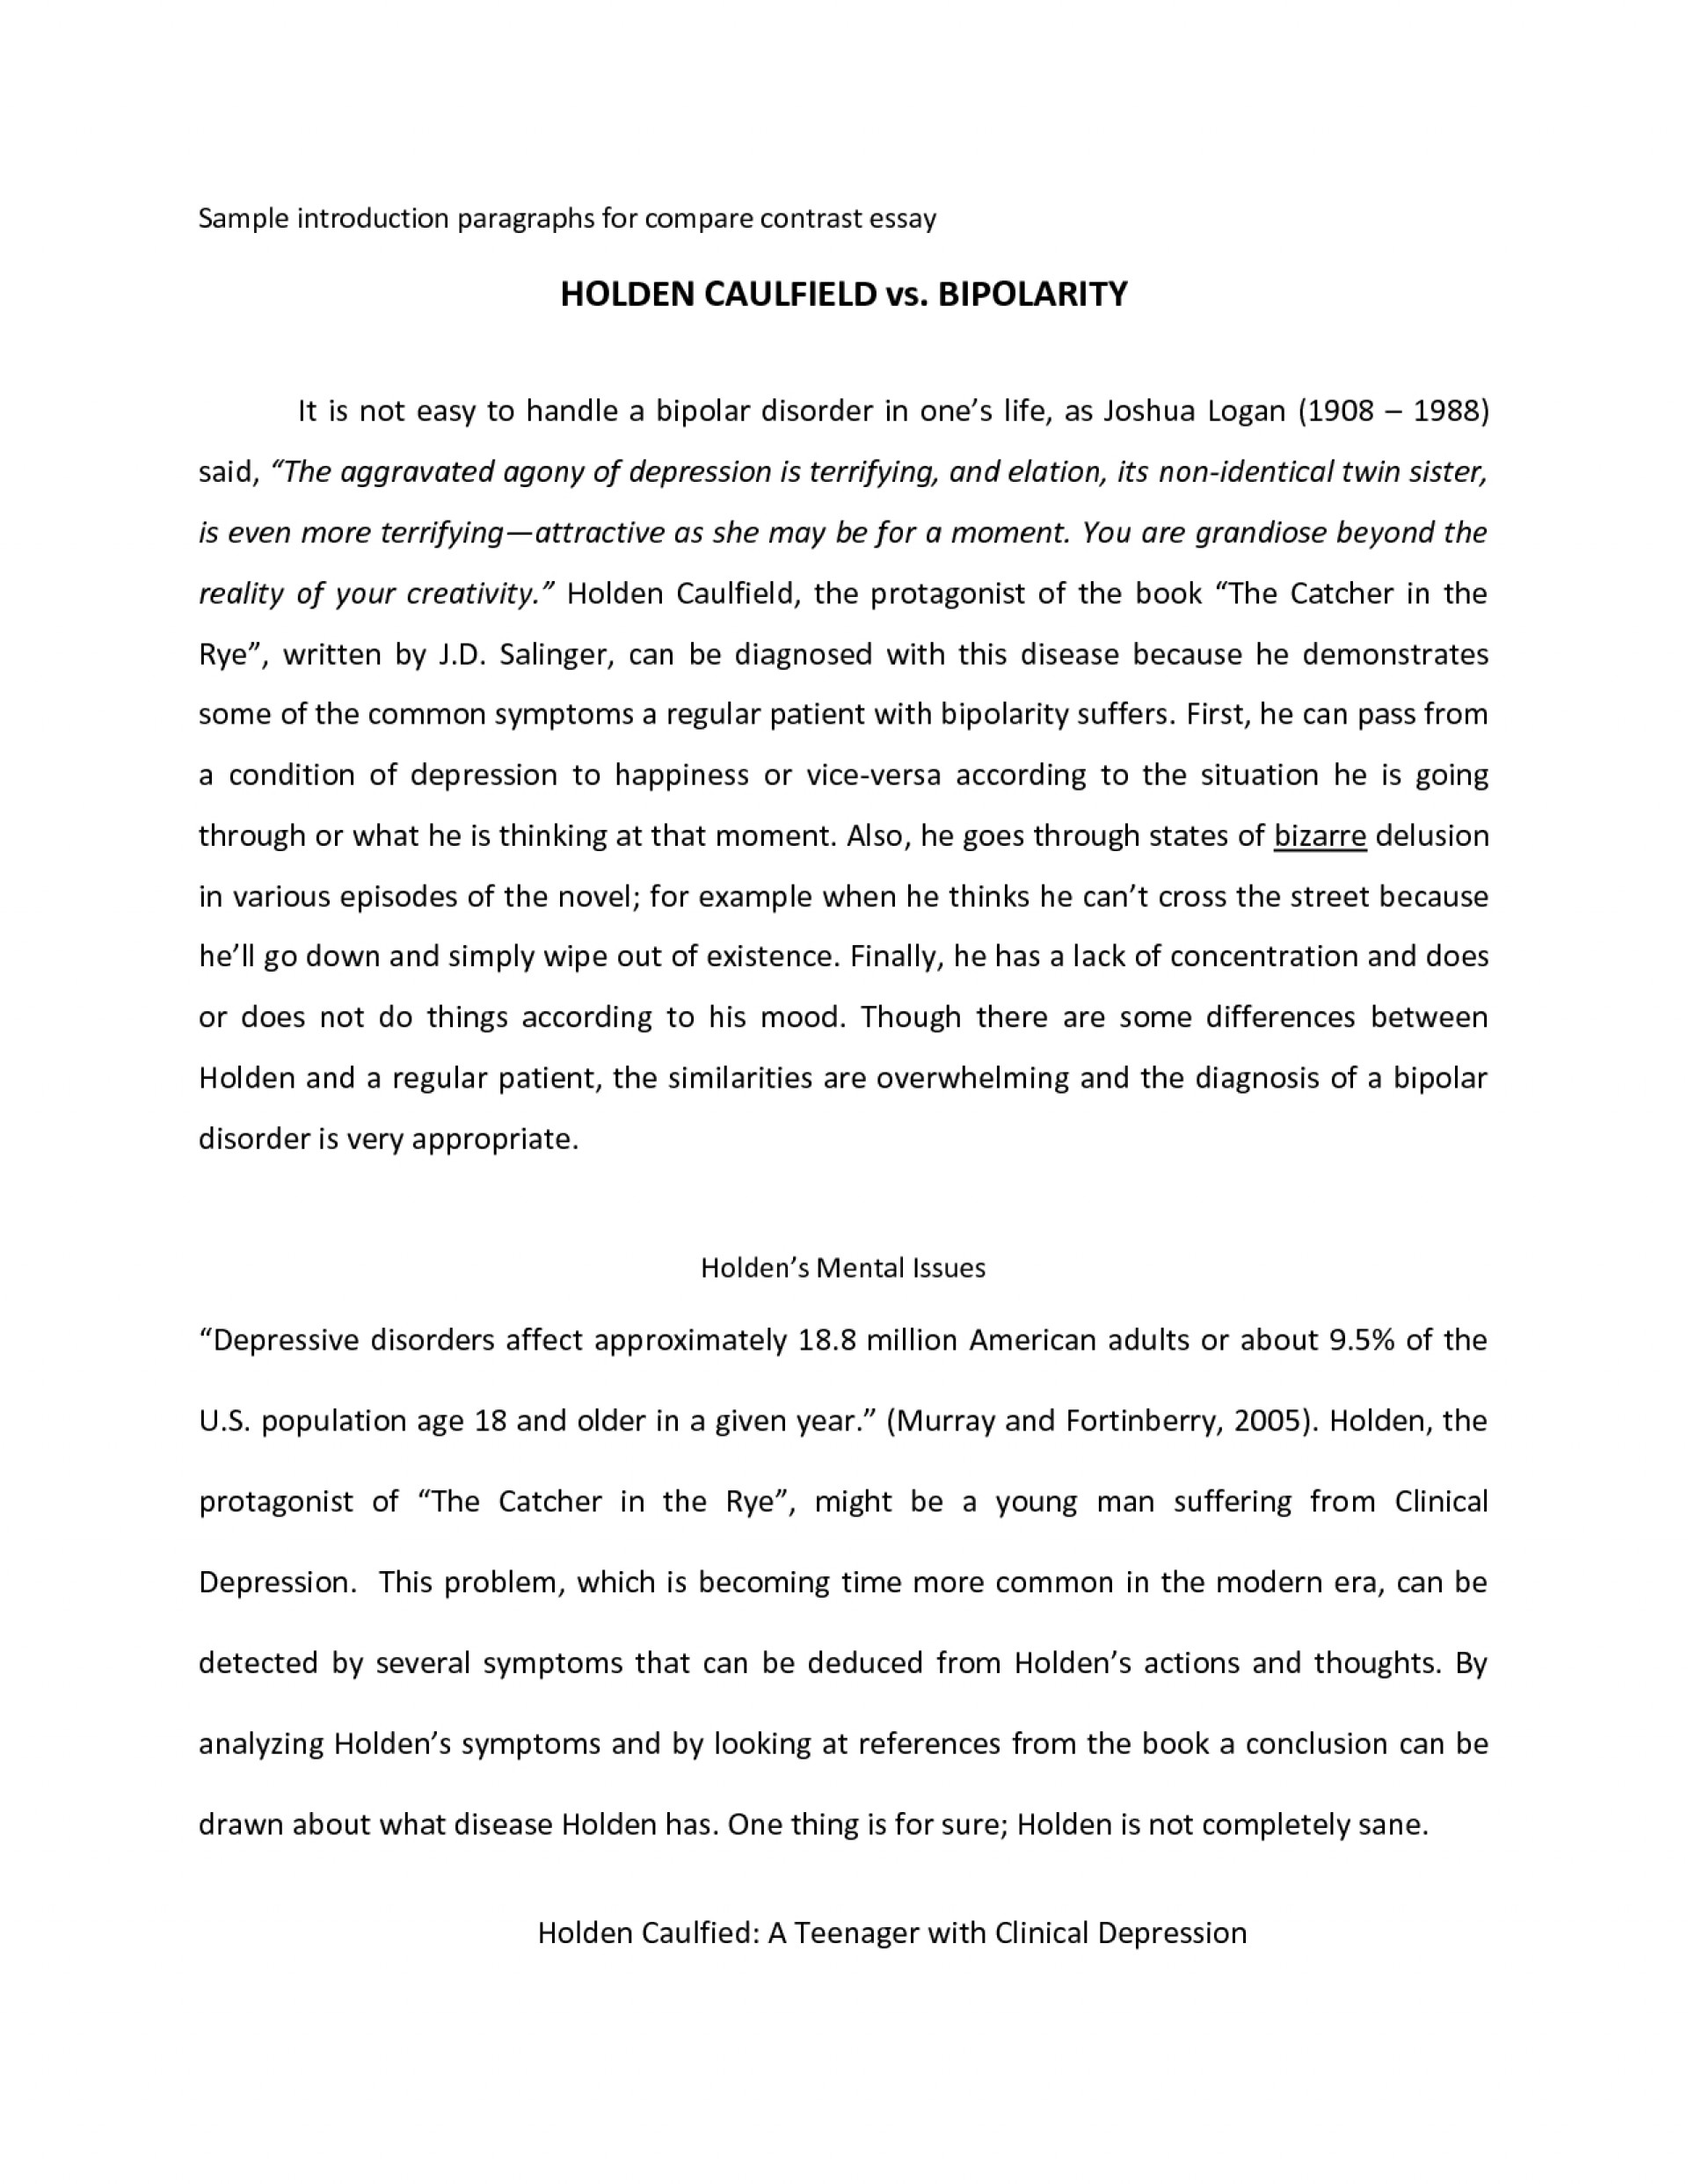 011 Compare And Contrast Essay Introduction Example Collection Of Solutions Examples Comparison Essays Bunch Ideas On L Block Format 4th Grade 5th Food Middle Magnificent Paragraph How To Write A Template 1920